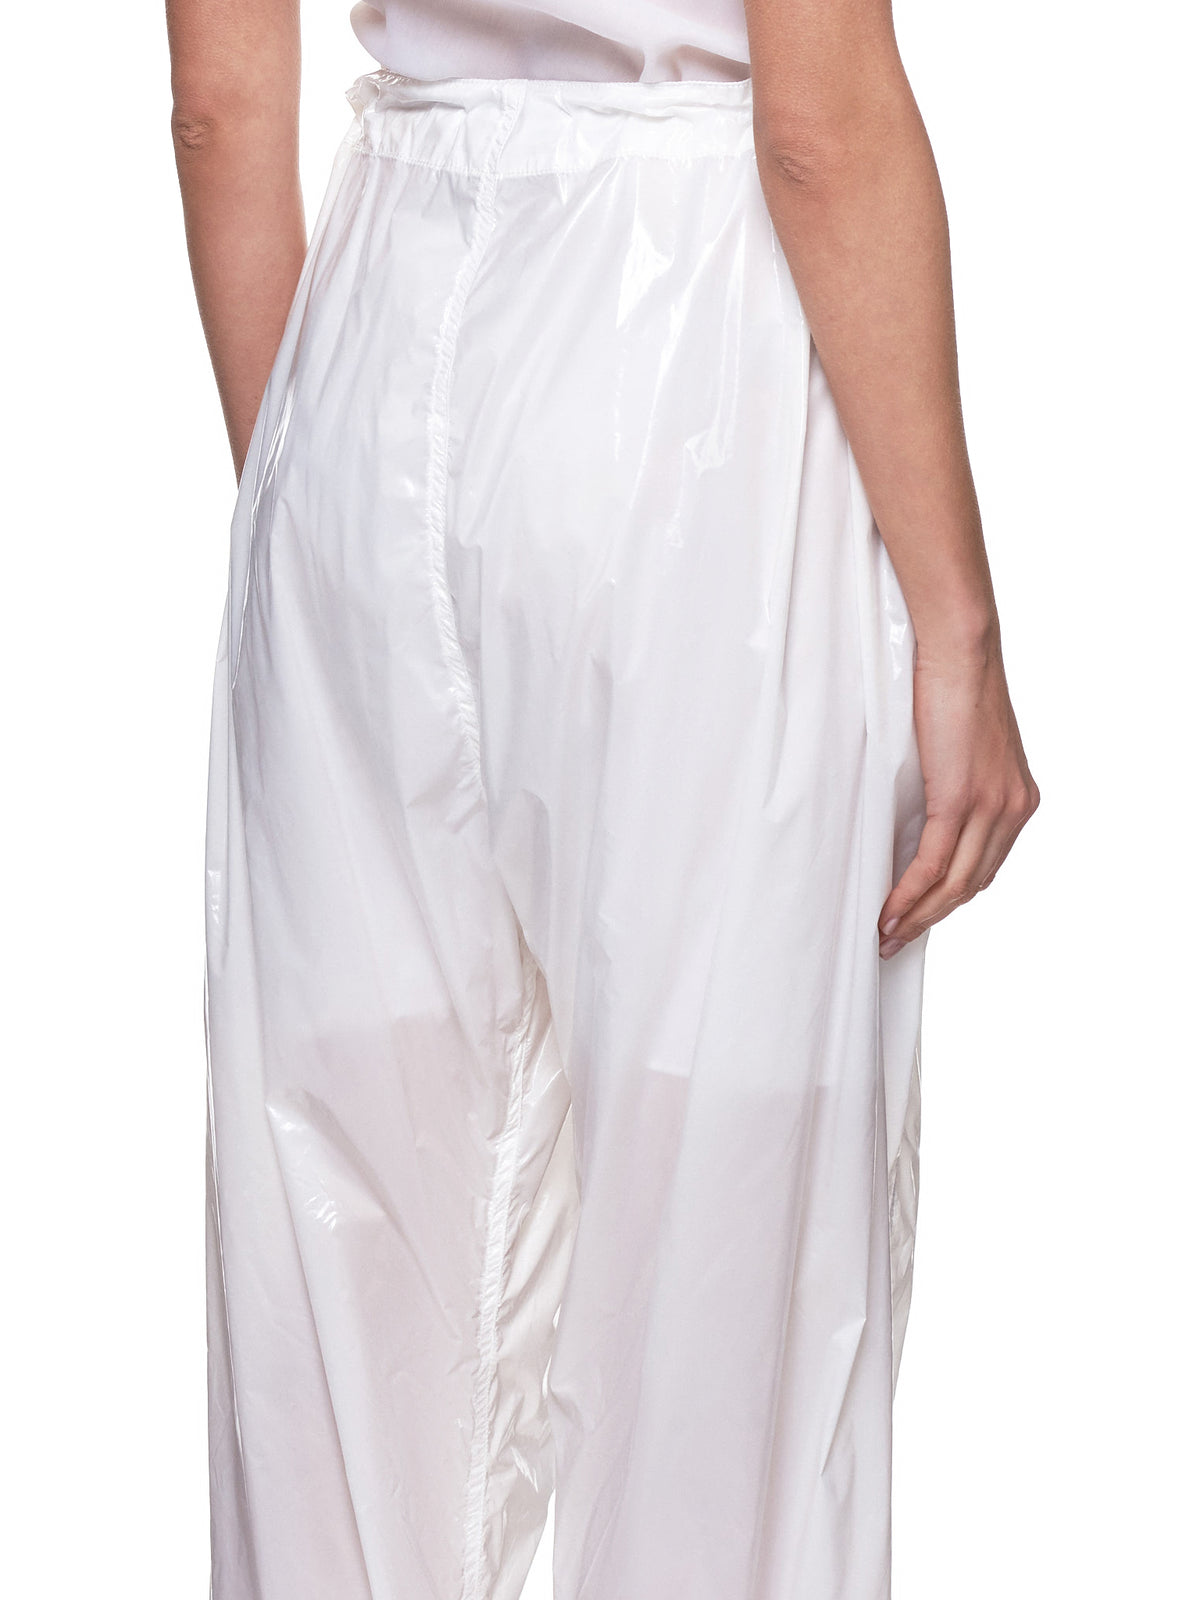 Parachute Baggy Trousers (P018-PP-WHITE)